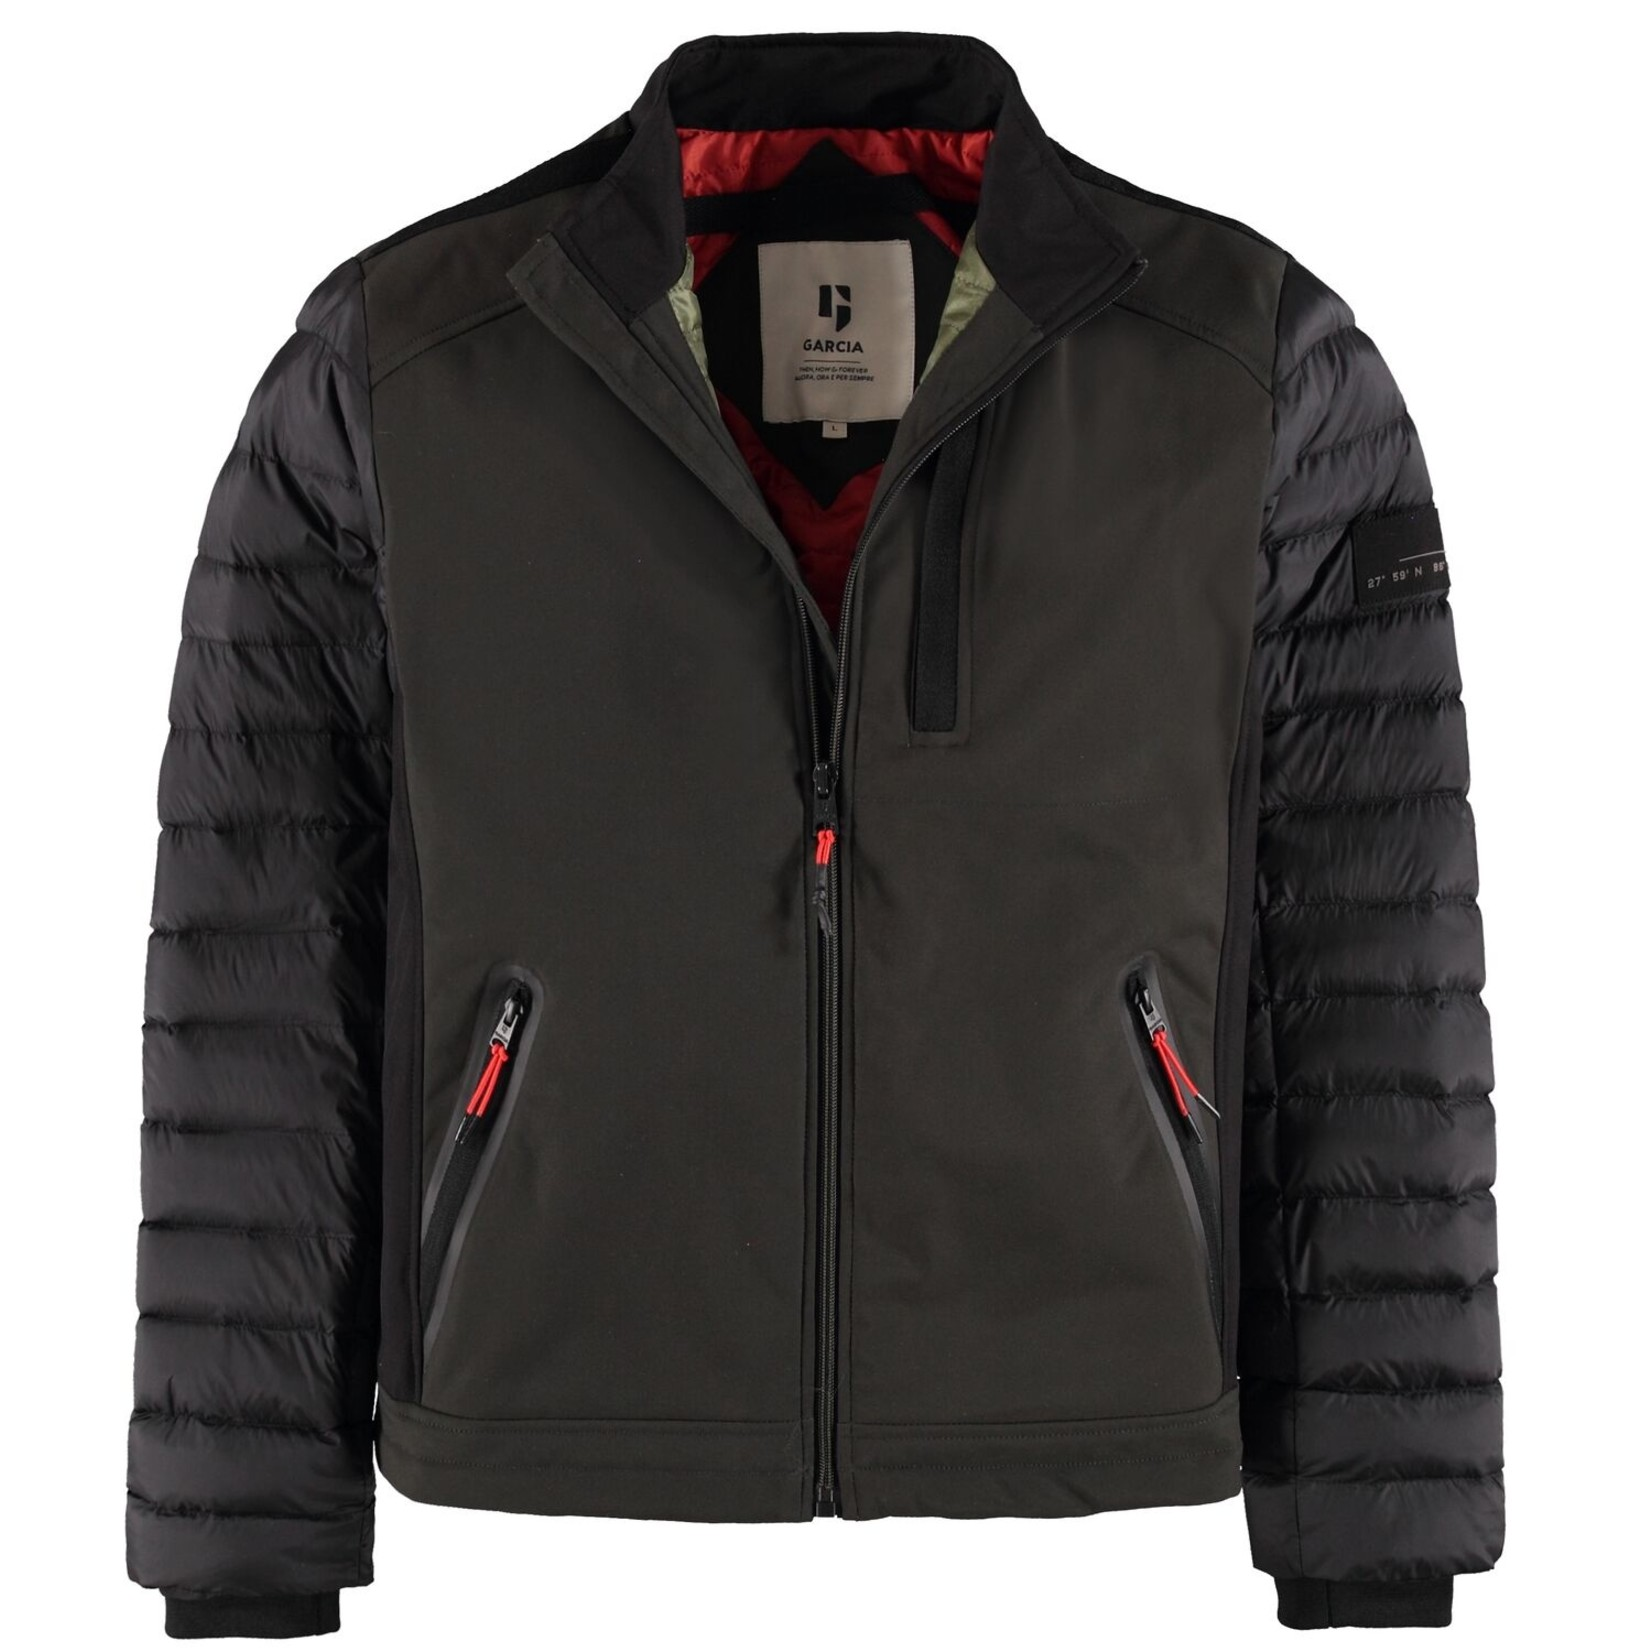 Garcia Garcia GJ010909 Soft Shell Jacket